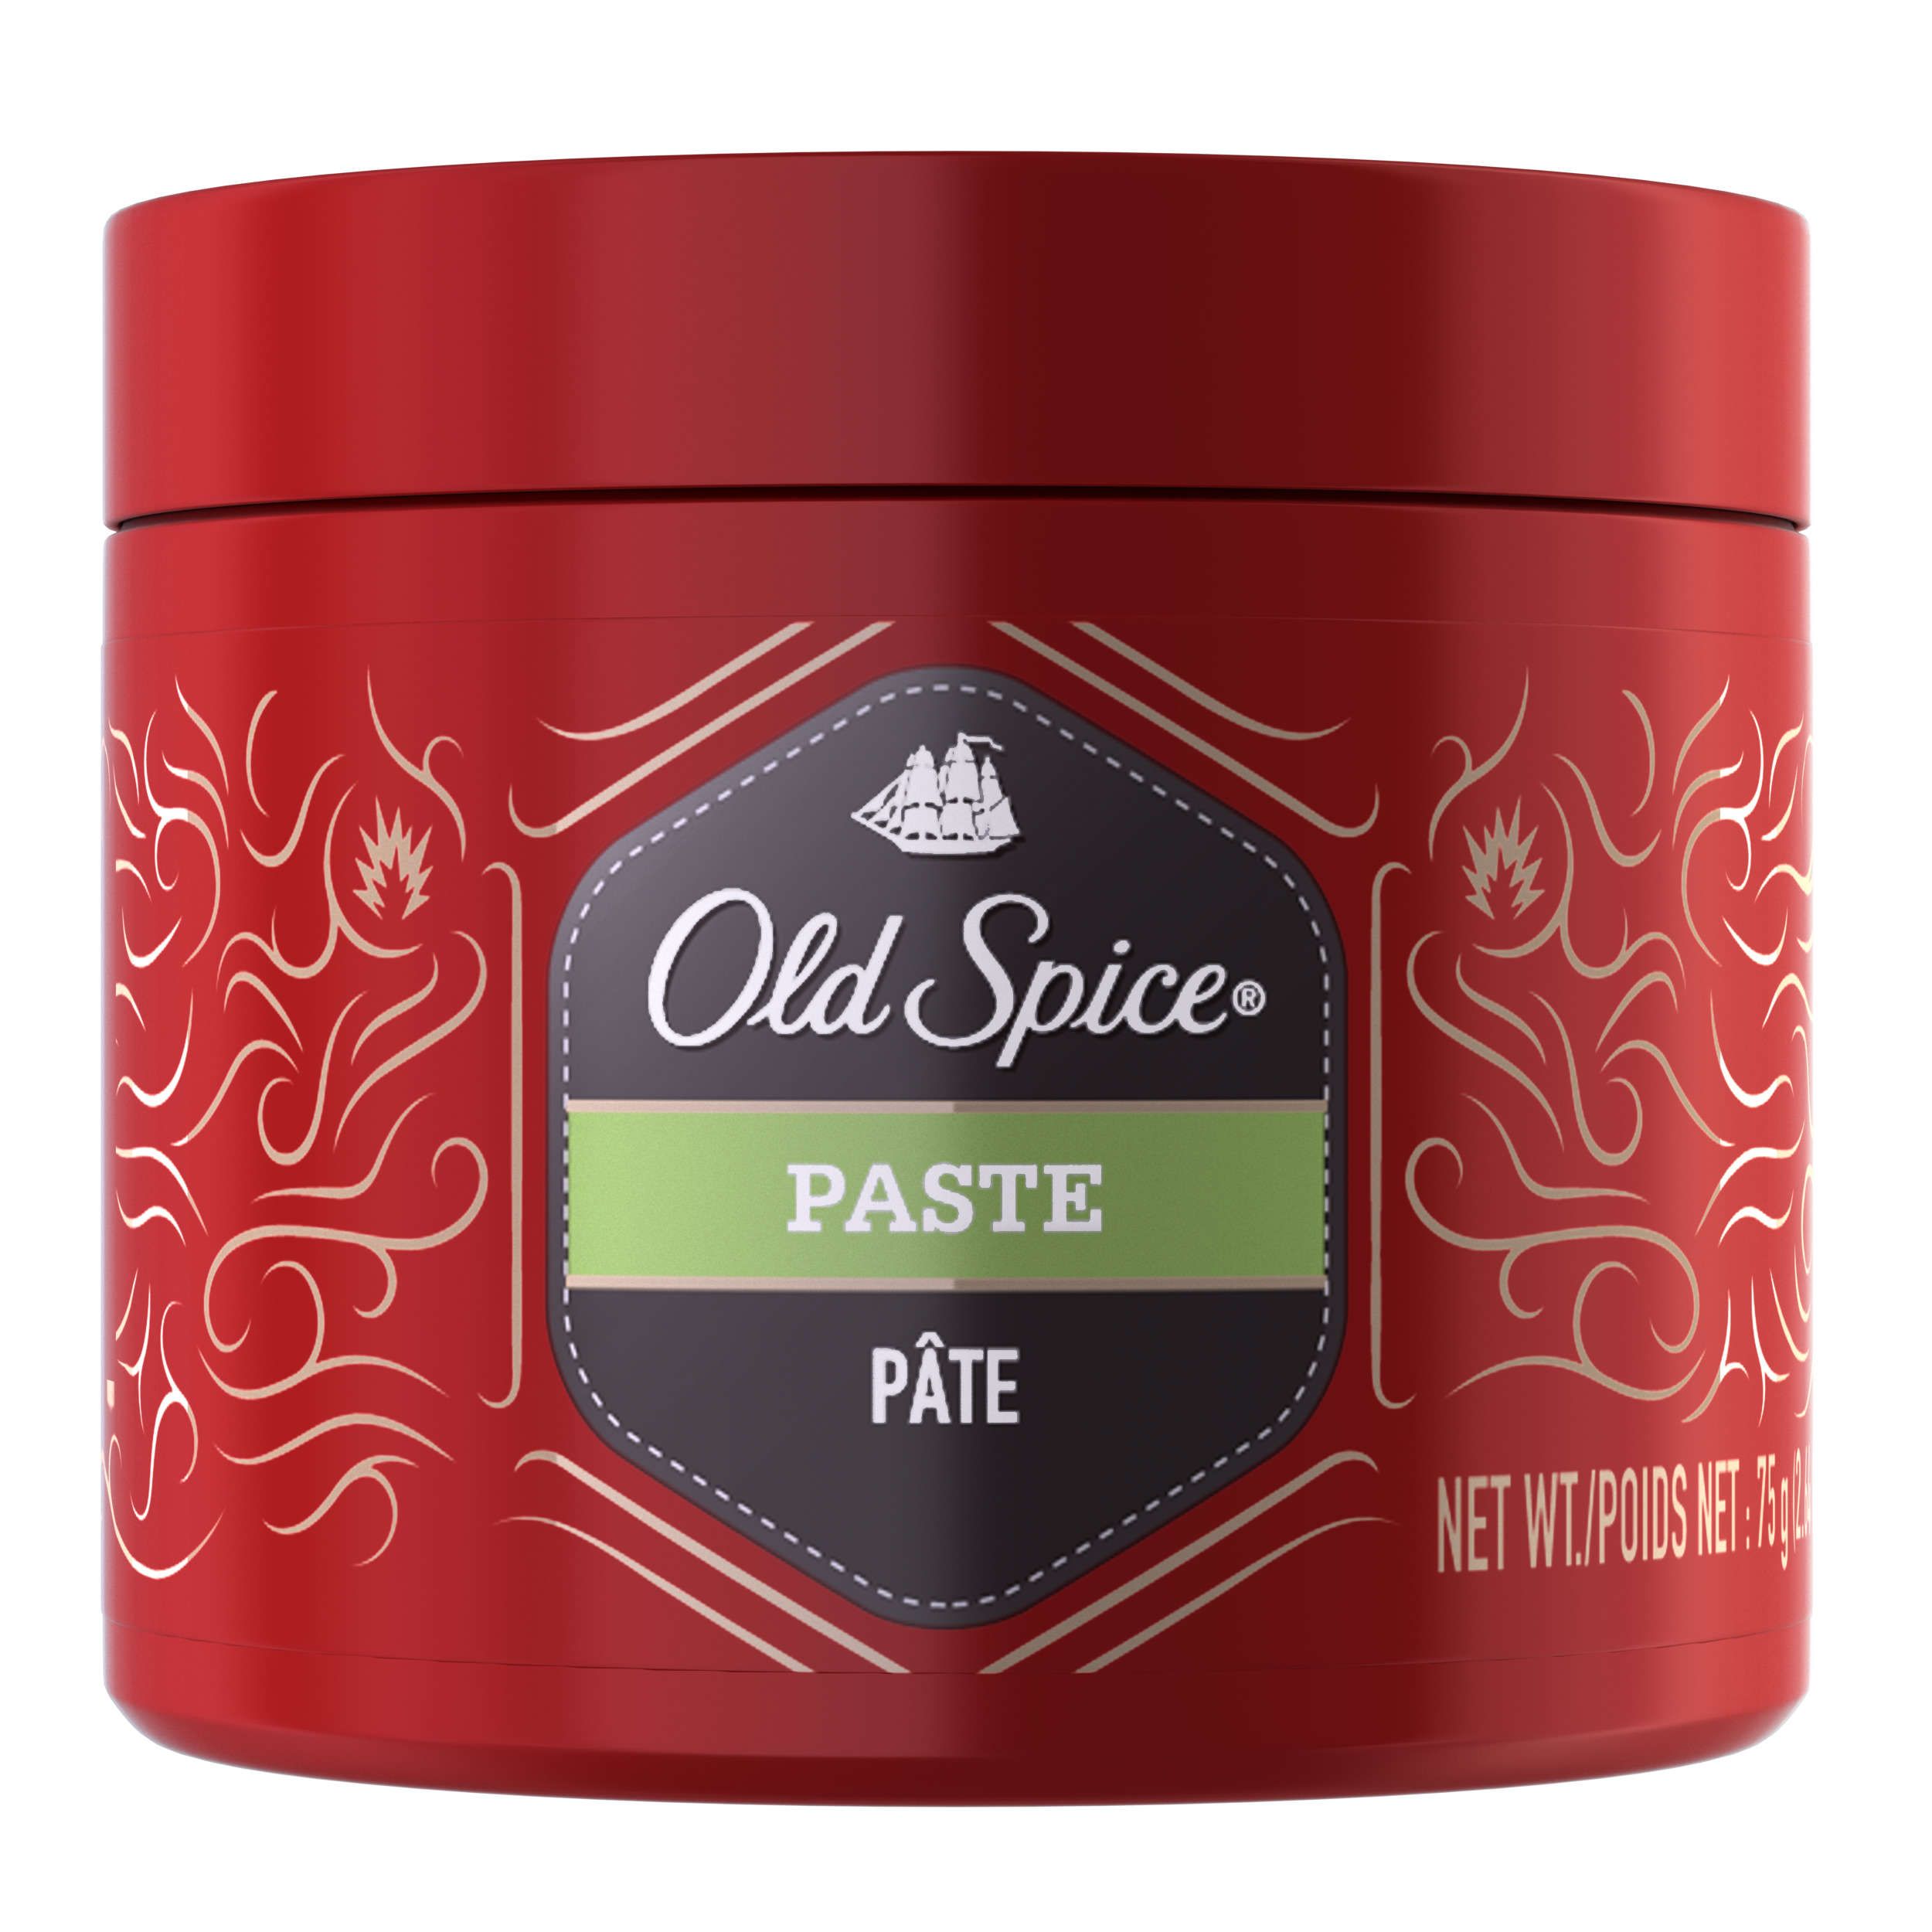 Old Spice Paste, 2.64 oz. – Hair Styling for Men